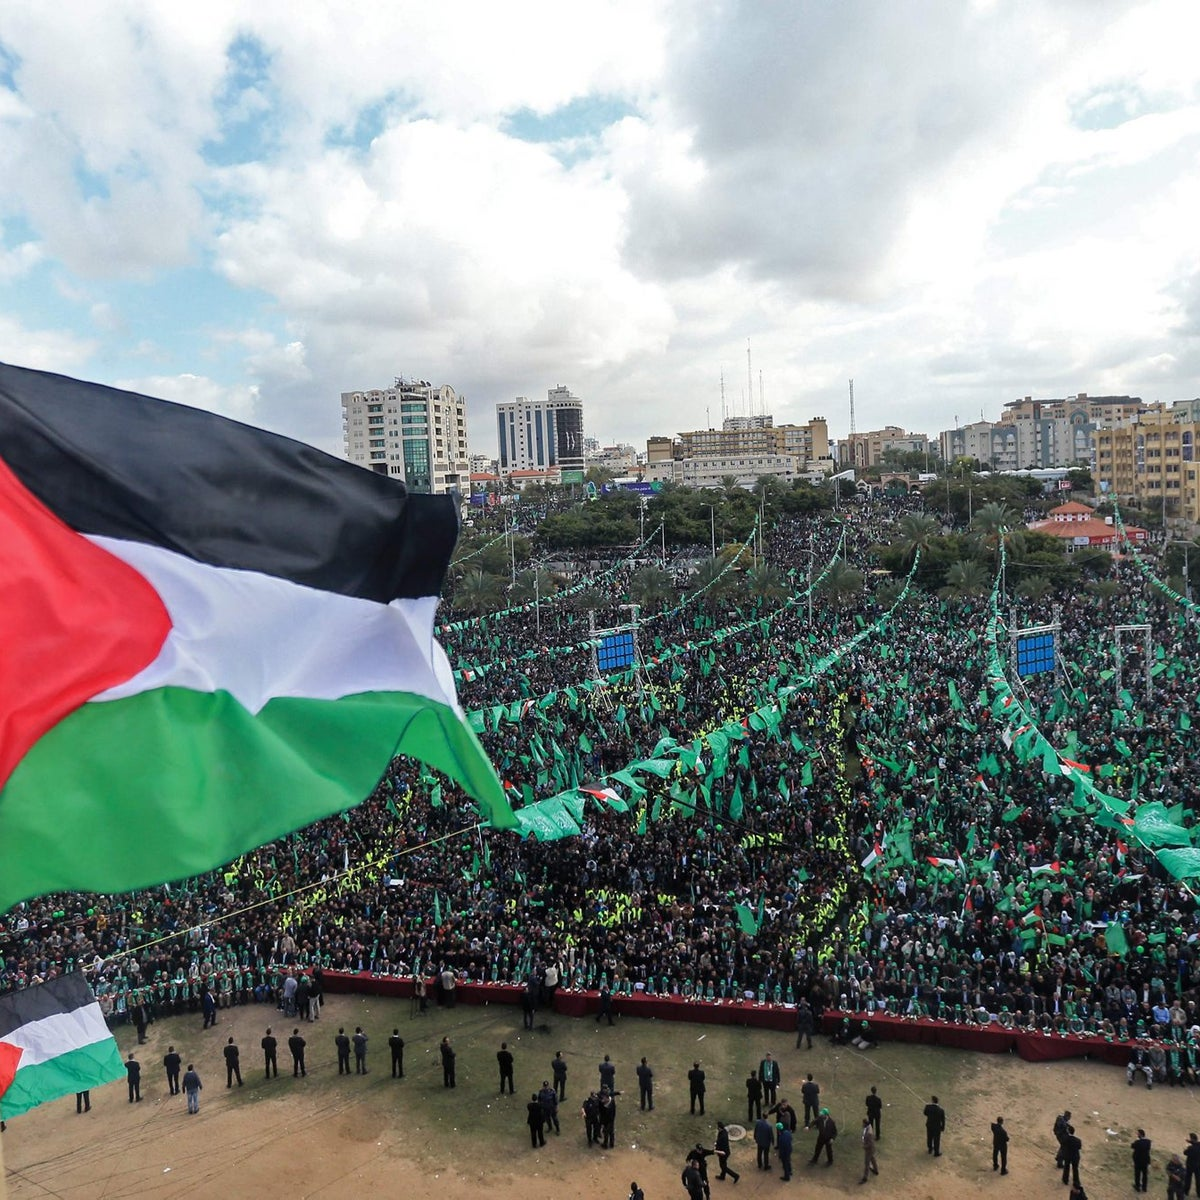 Hamas supporters take part in a rally marking the 30th anniversary of the founding of the Islamist movement, in Gaza City, on December 14, 2017.